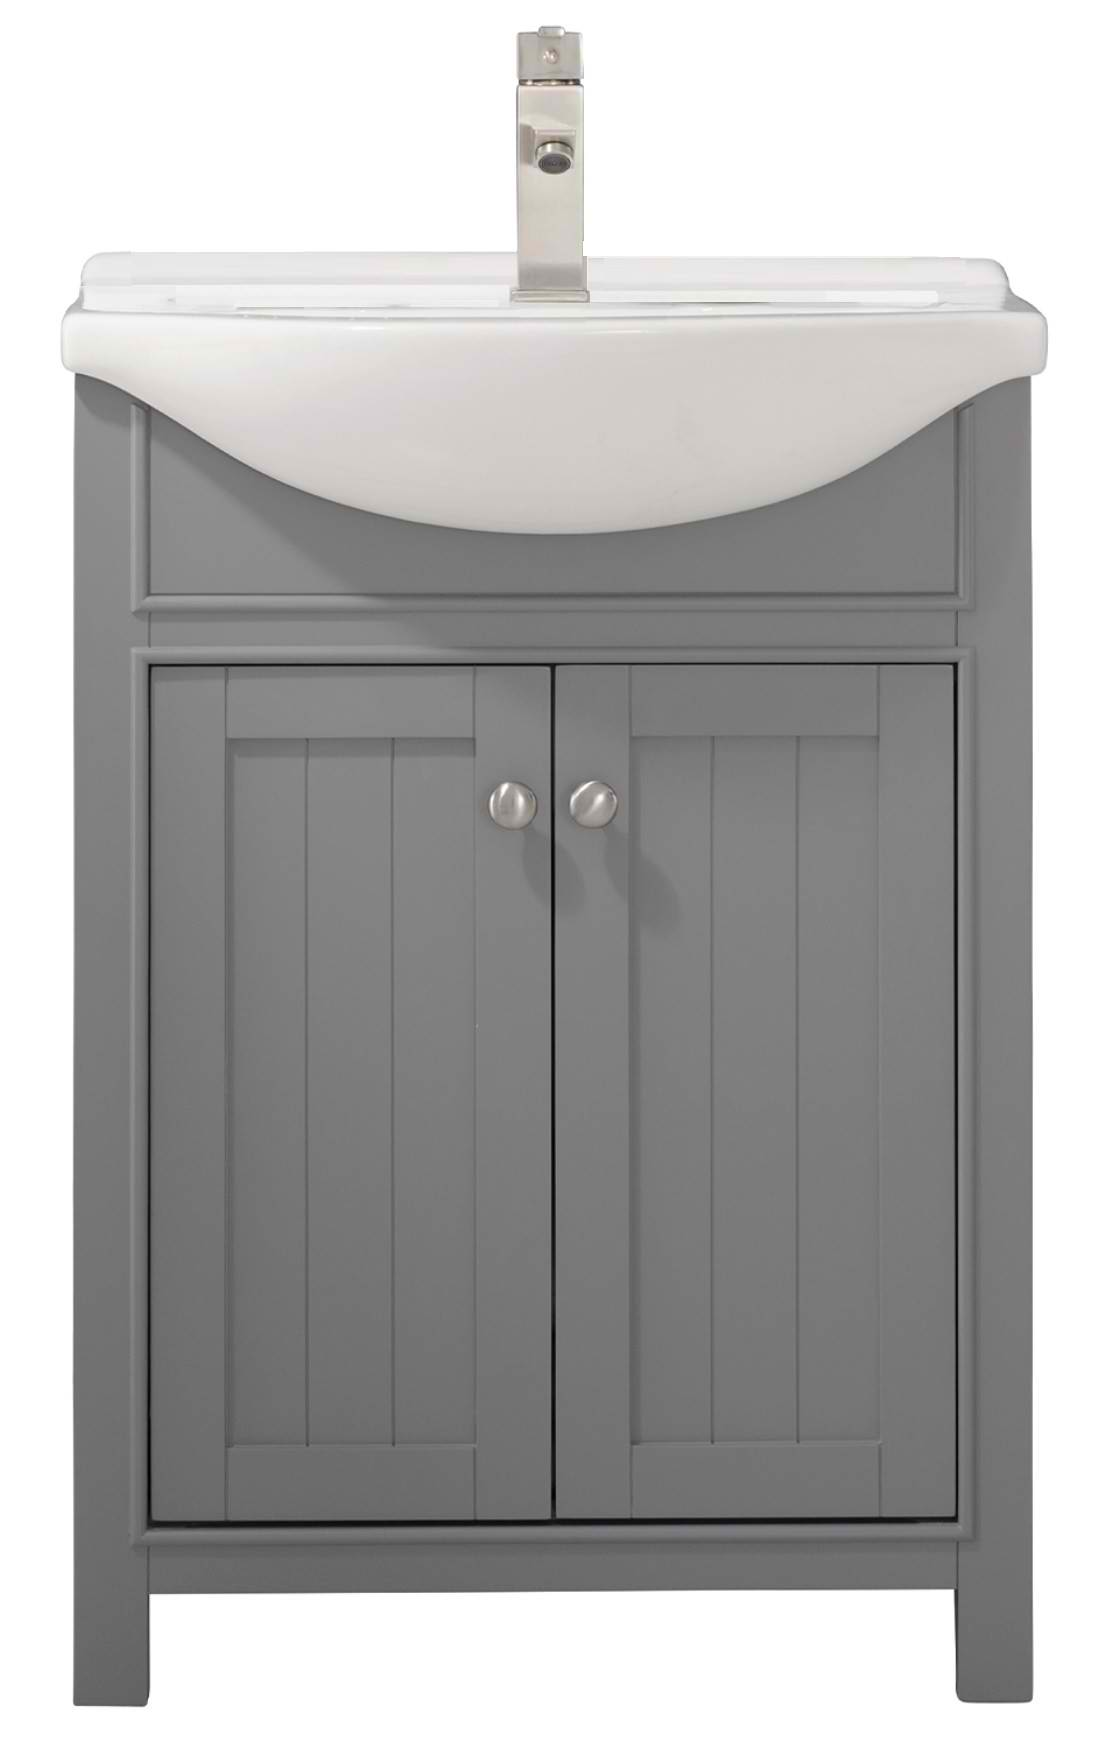 "Transitional 24"" Single Sink Vanity with Porcelain Integrated Counterop and Sink in Gray Finish"